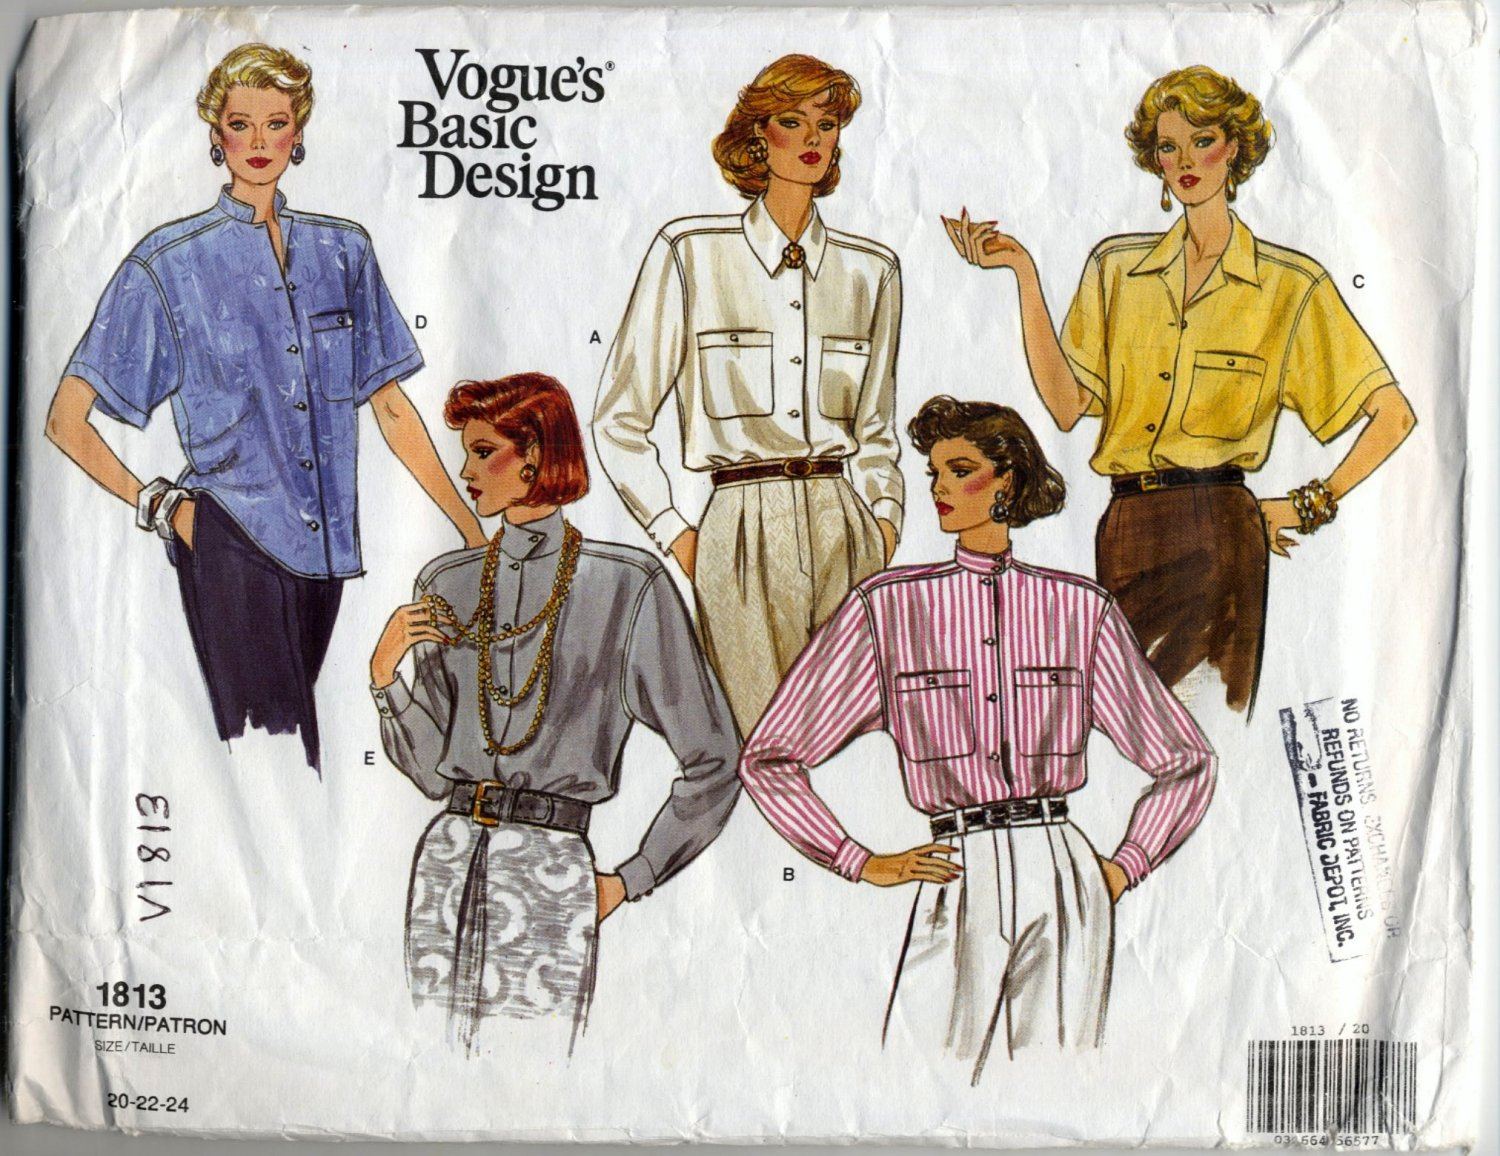 Vogue 1813 Shirt - Vogue Basic Design Sewing Pattern - Misses' 20-24 Bust 42-46 - Wardrobe Builder